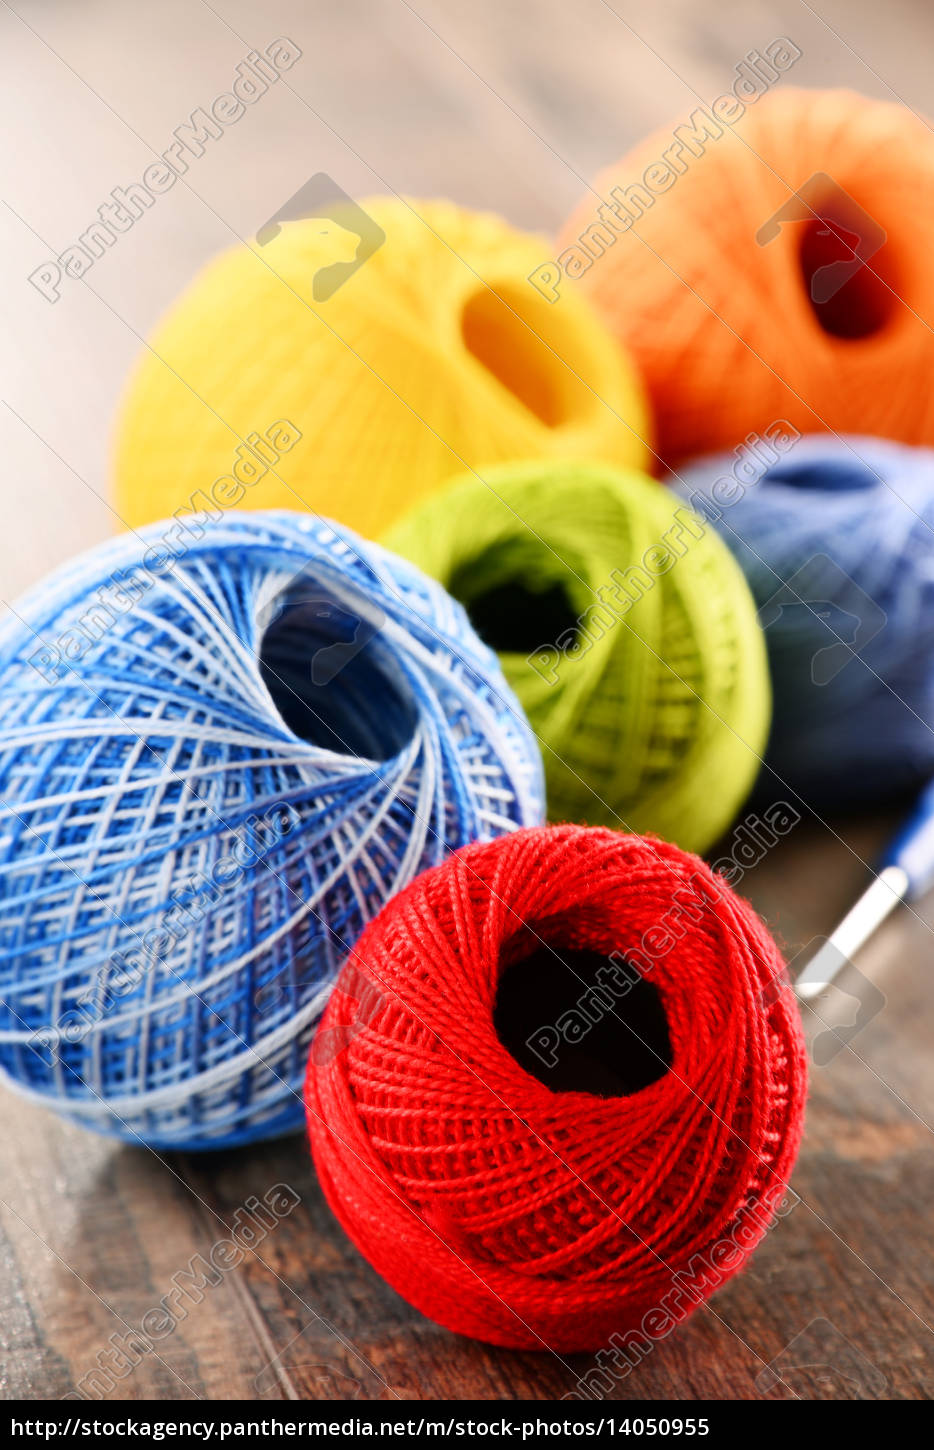 colorful, yarn, for, crocheting, and, hook - 14050955